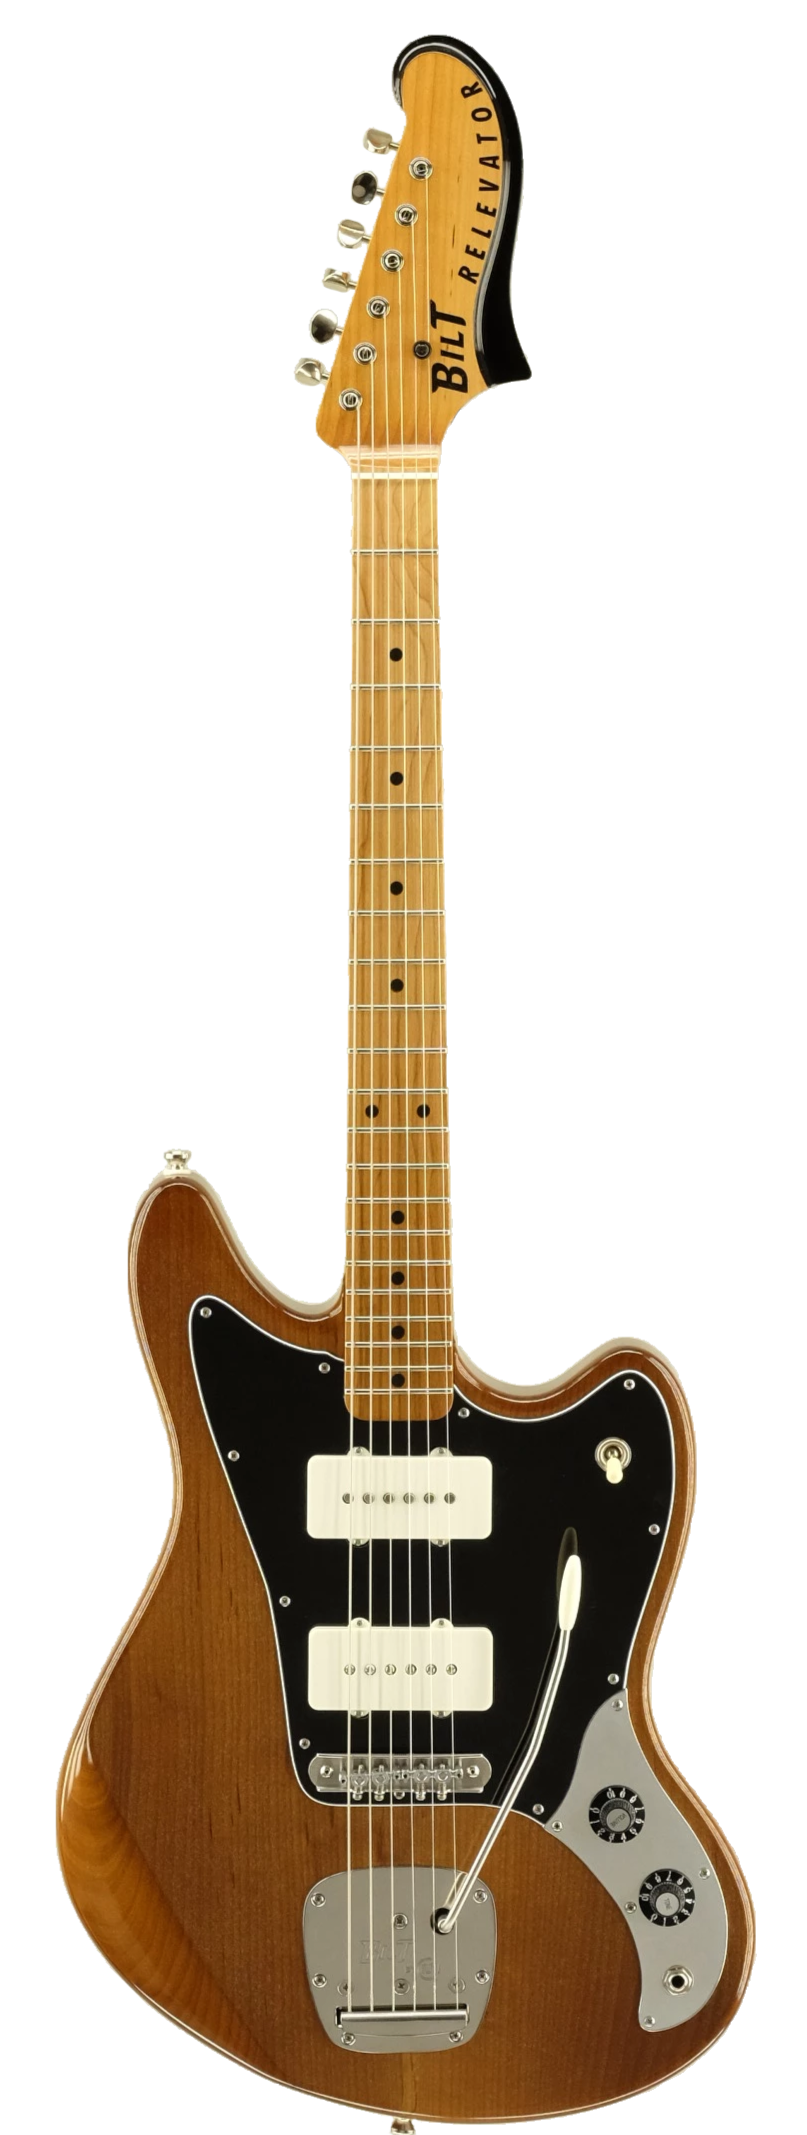 Relevator LS Natural Tinted Roasted Alder